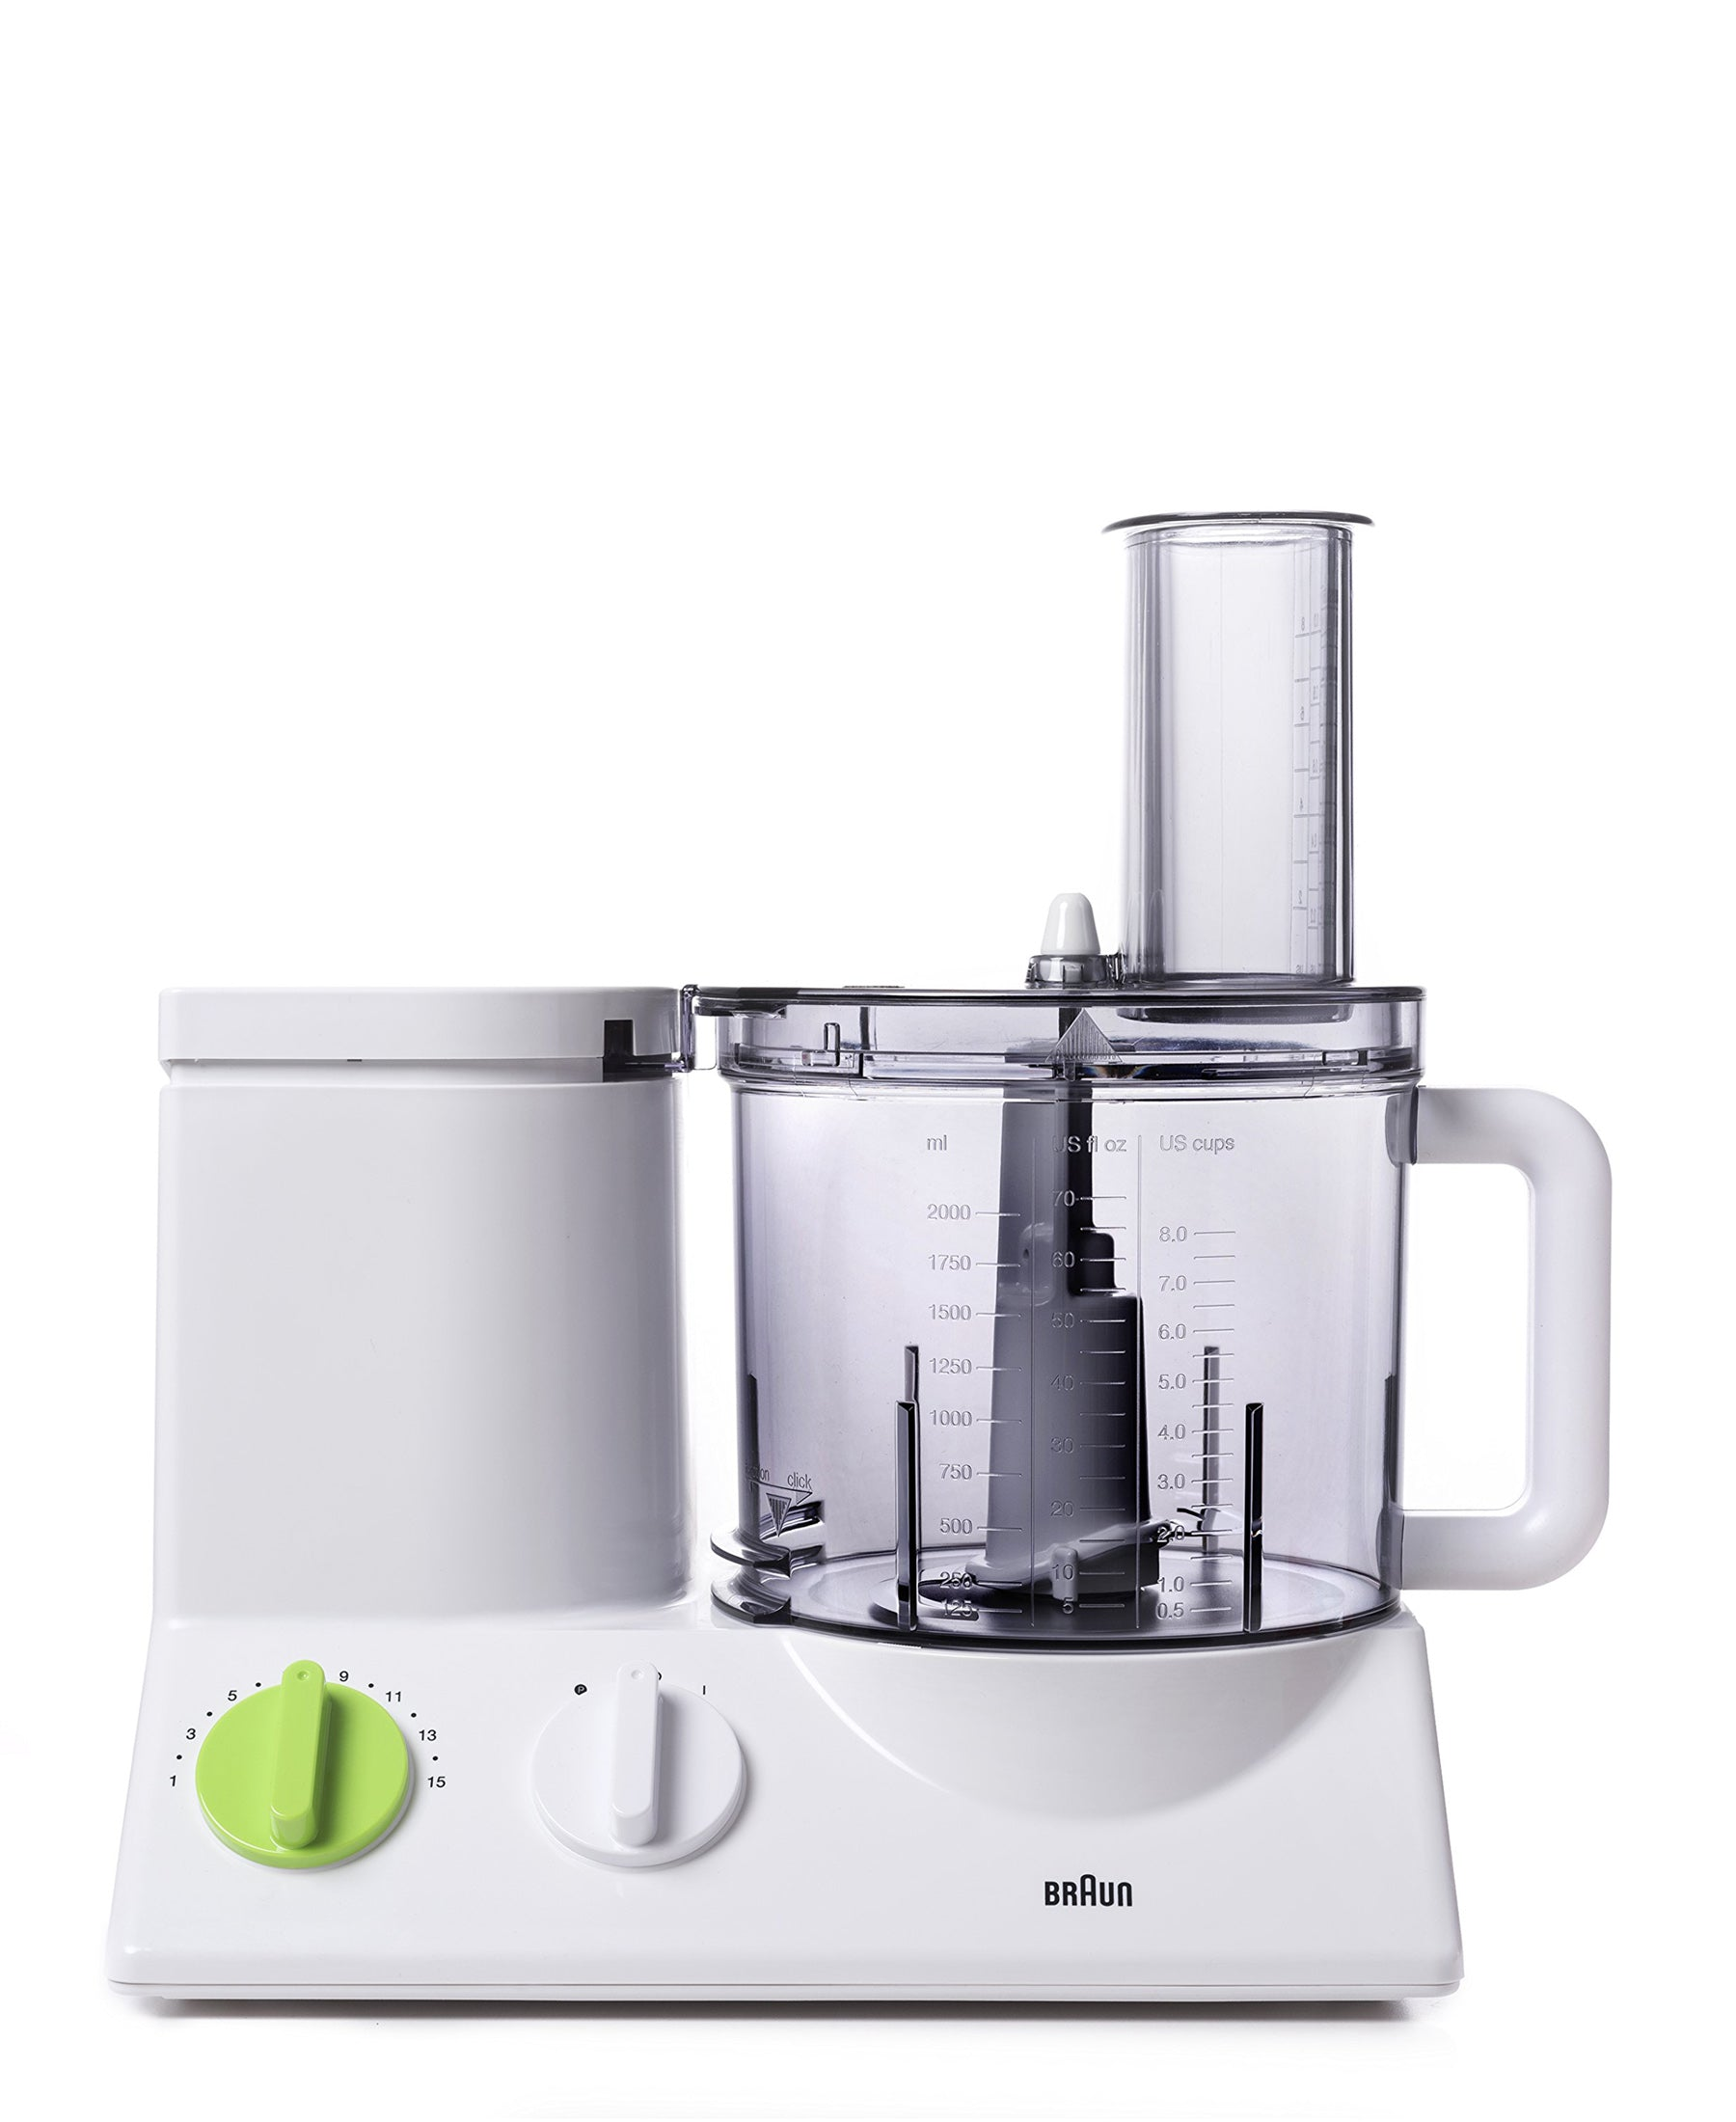 Braun Tribute Collection Food Processor